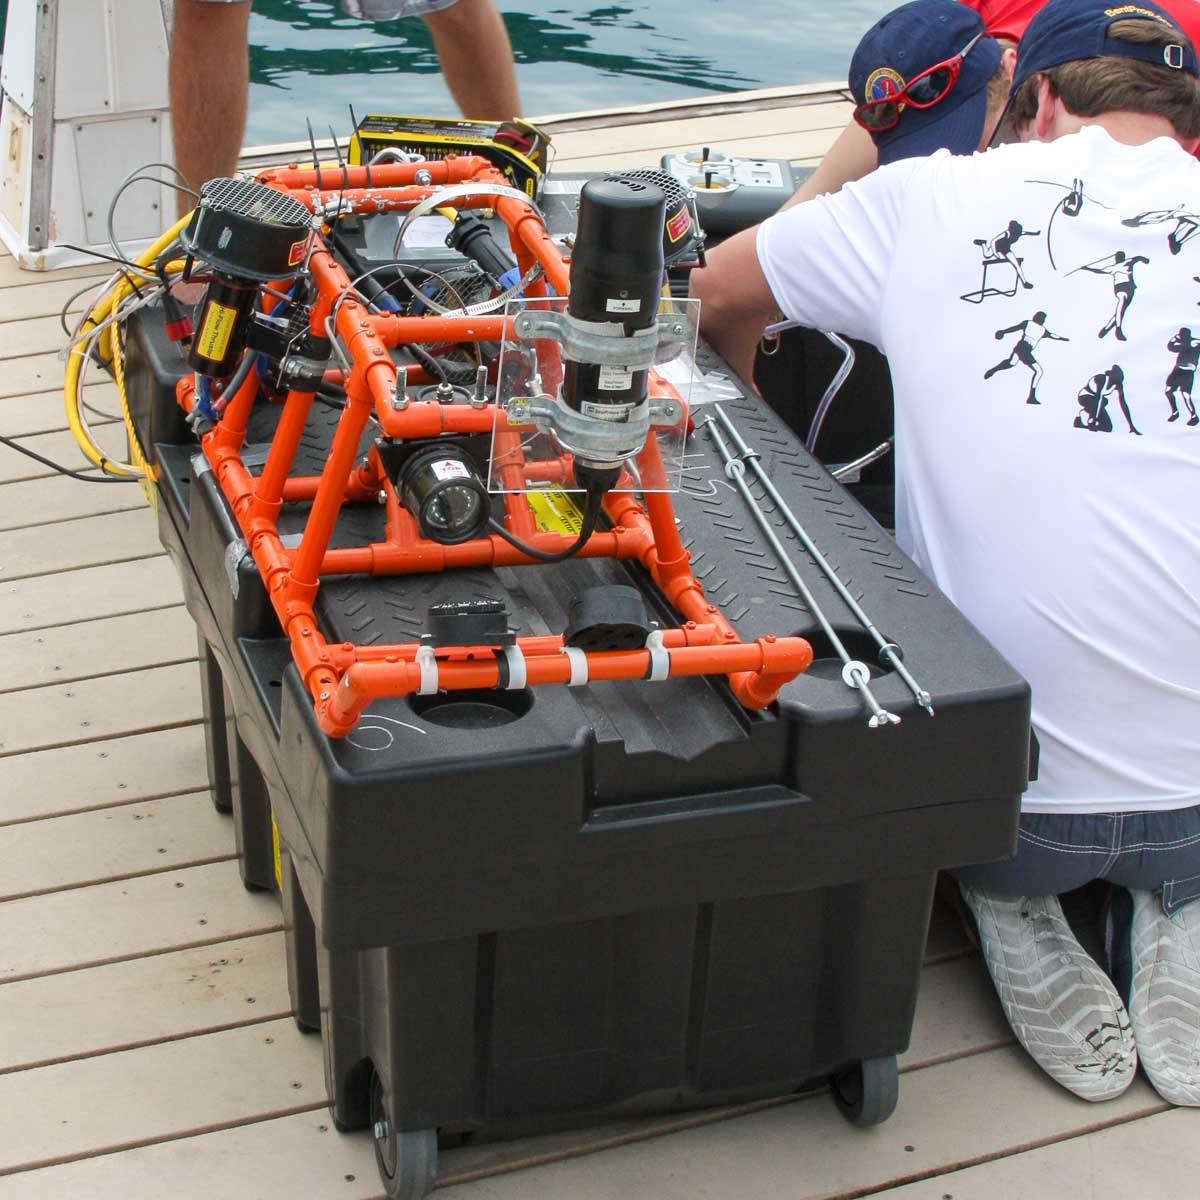 underwater ROV being assembled on boat dock in Palau